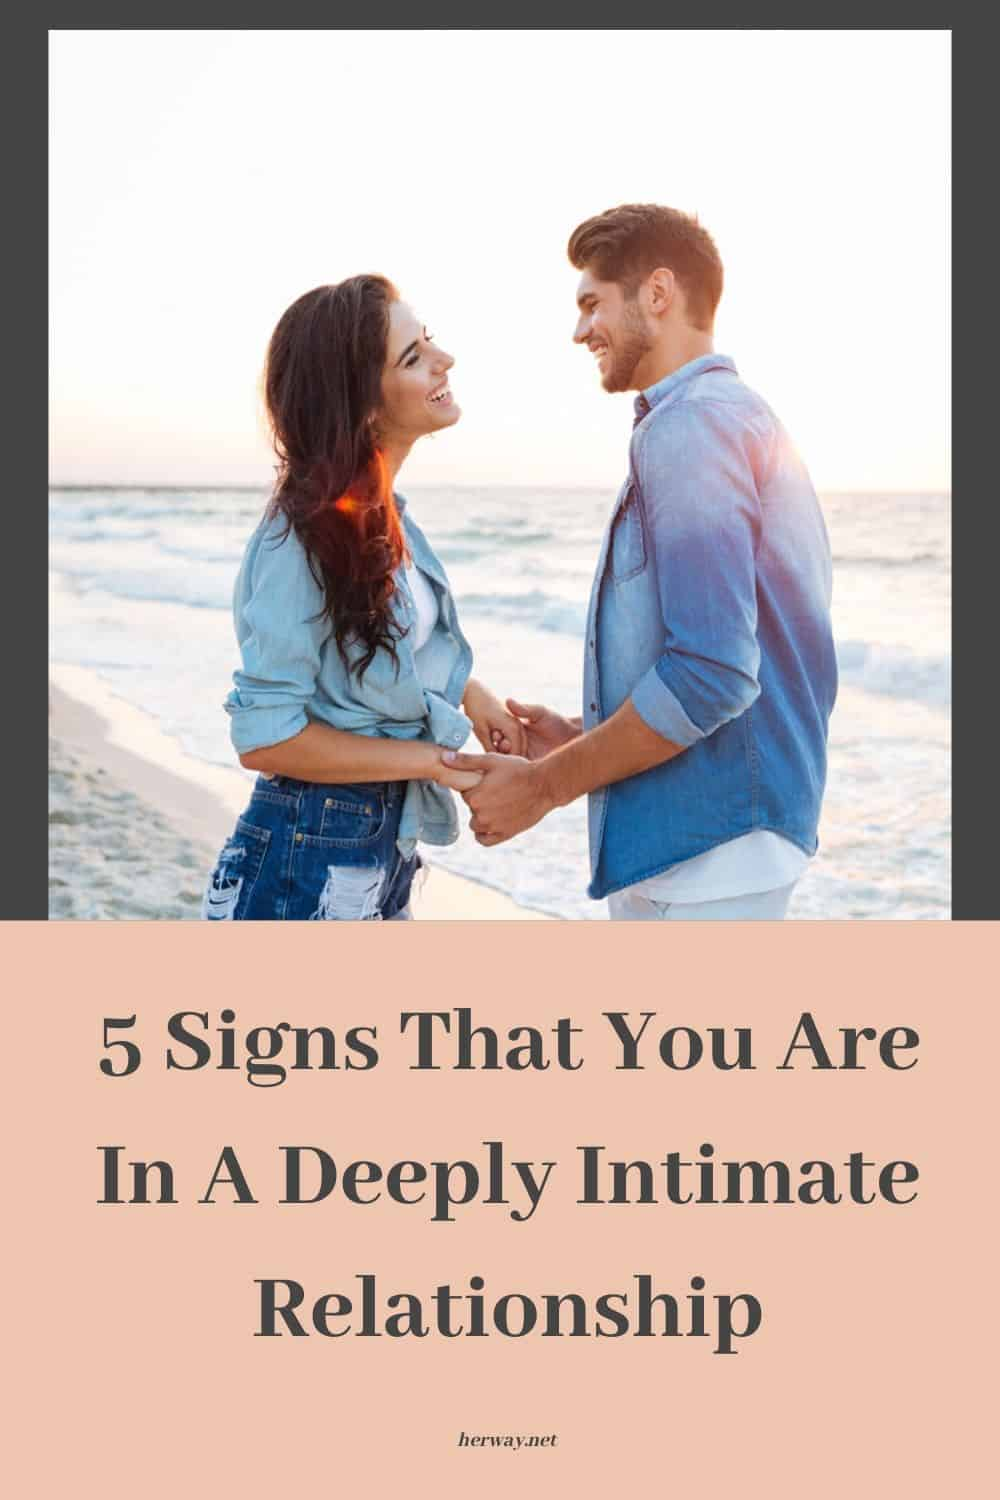 5 Signs That You Are In A Deeply Intimate Relationship